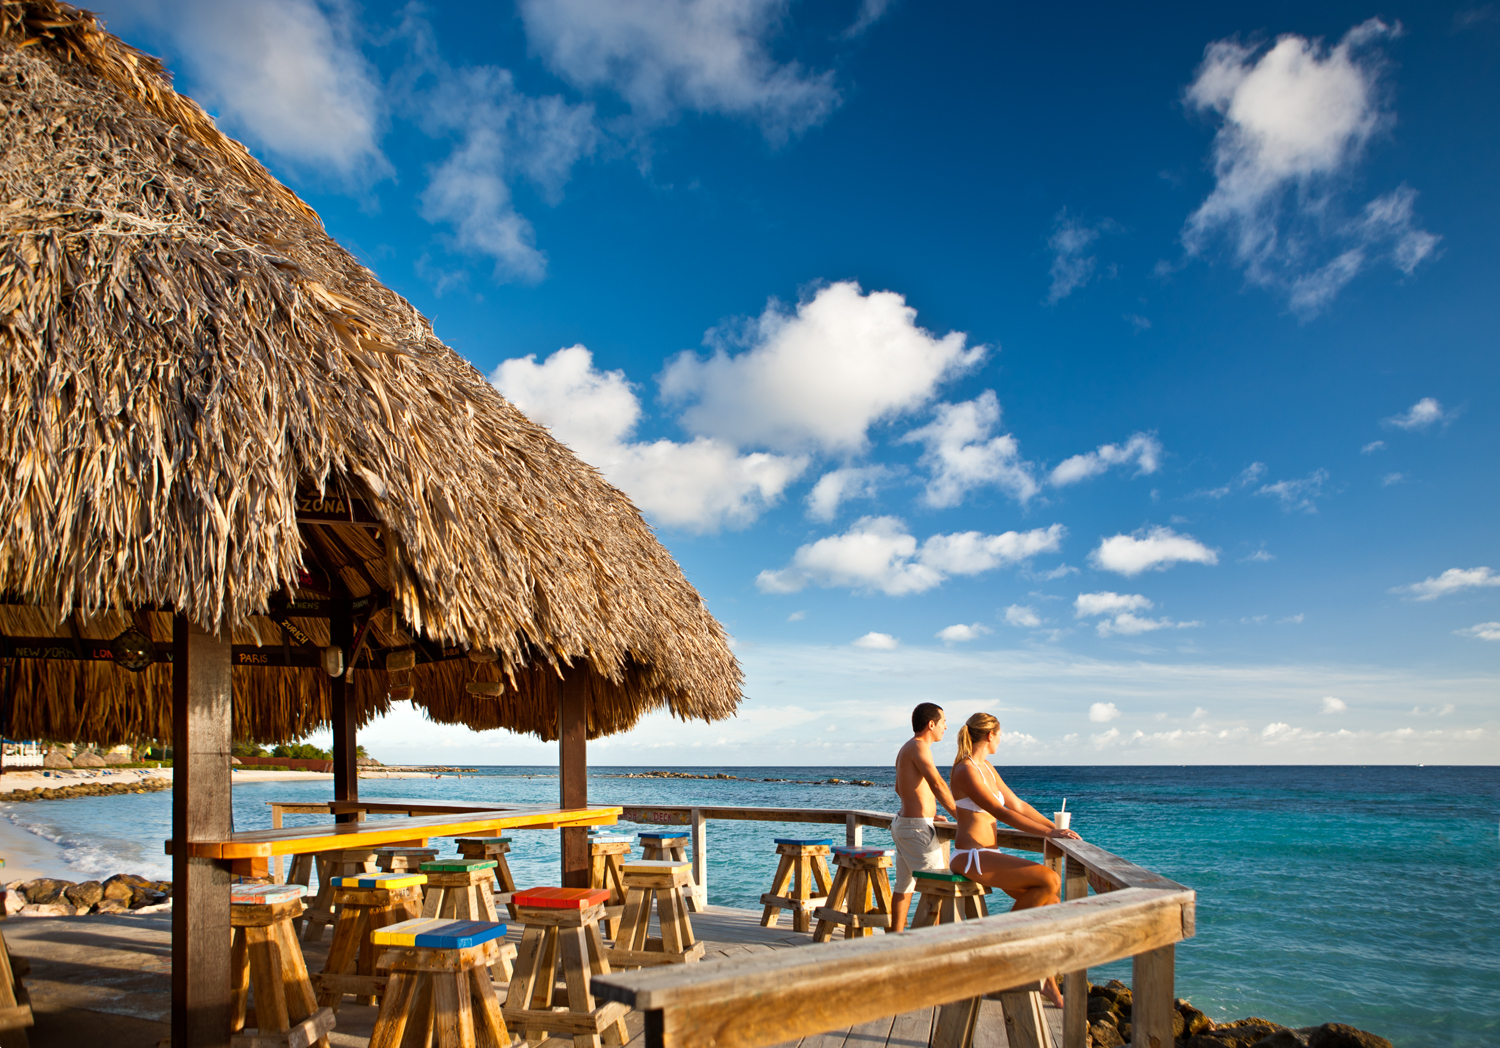 Hd Tropical Island Beach Paradise Wallpapers And Backgrounds: The Boardroom Beach Bar At The Curacao Marriott